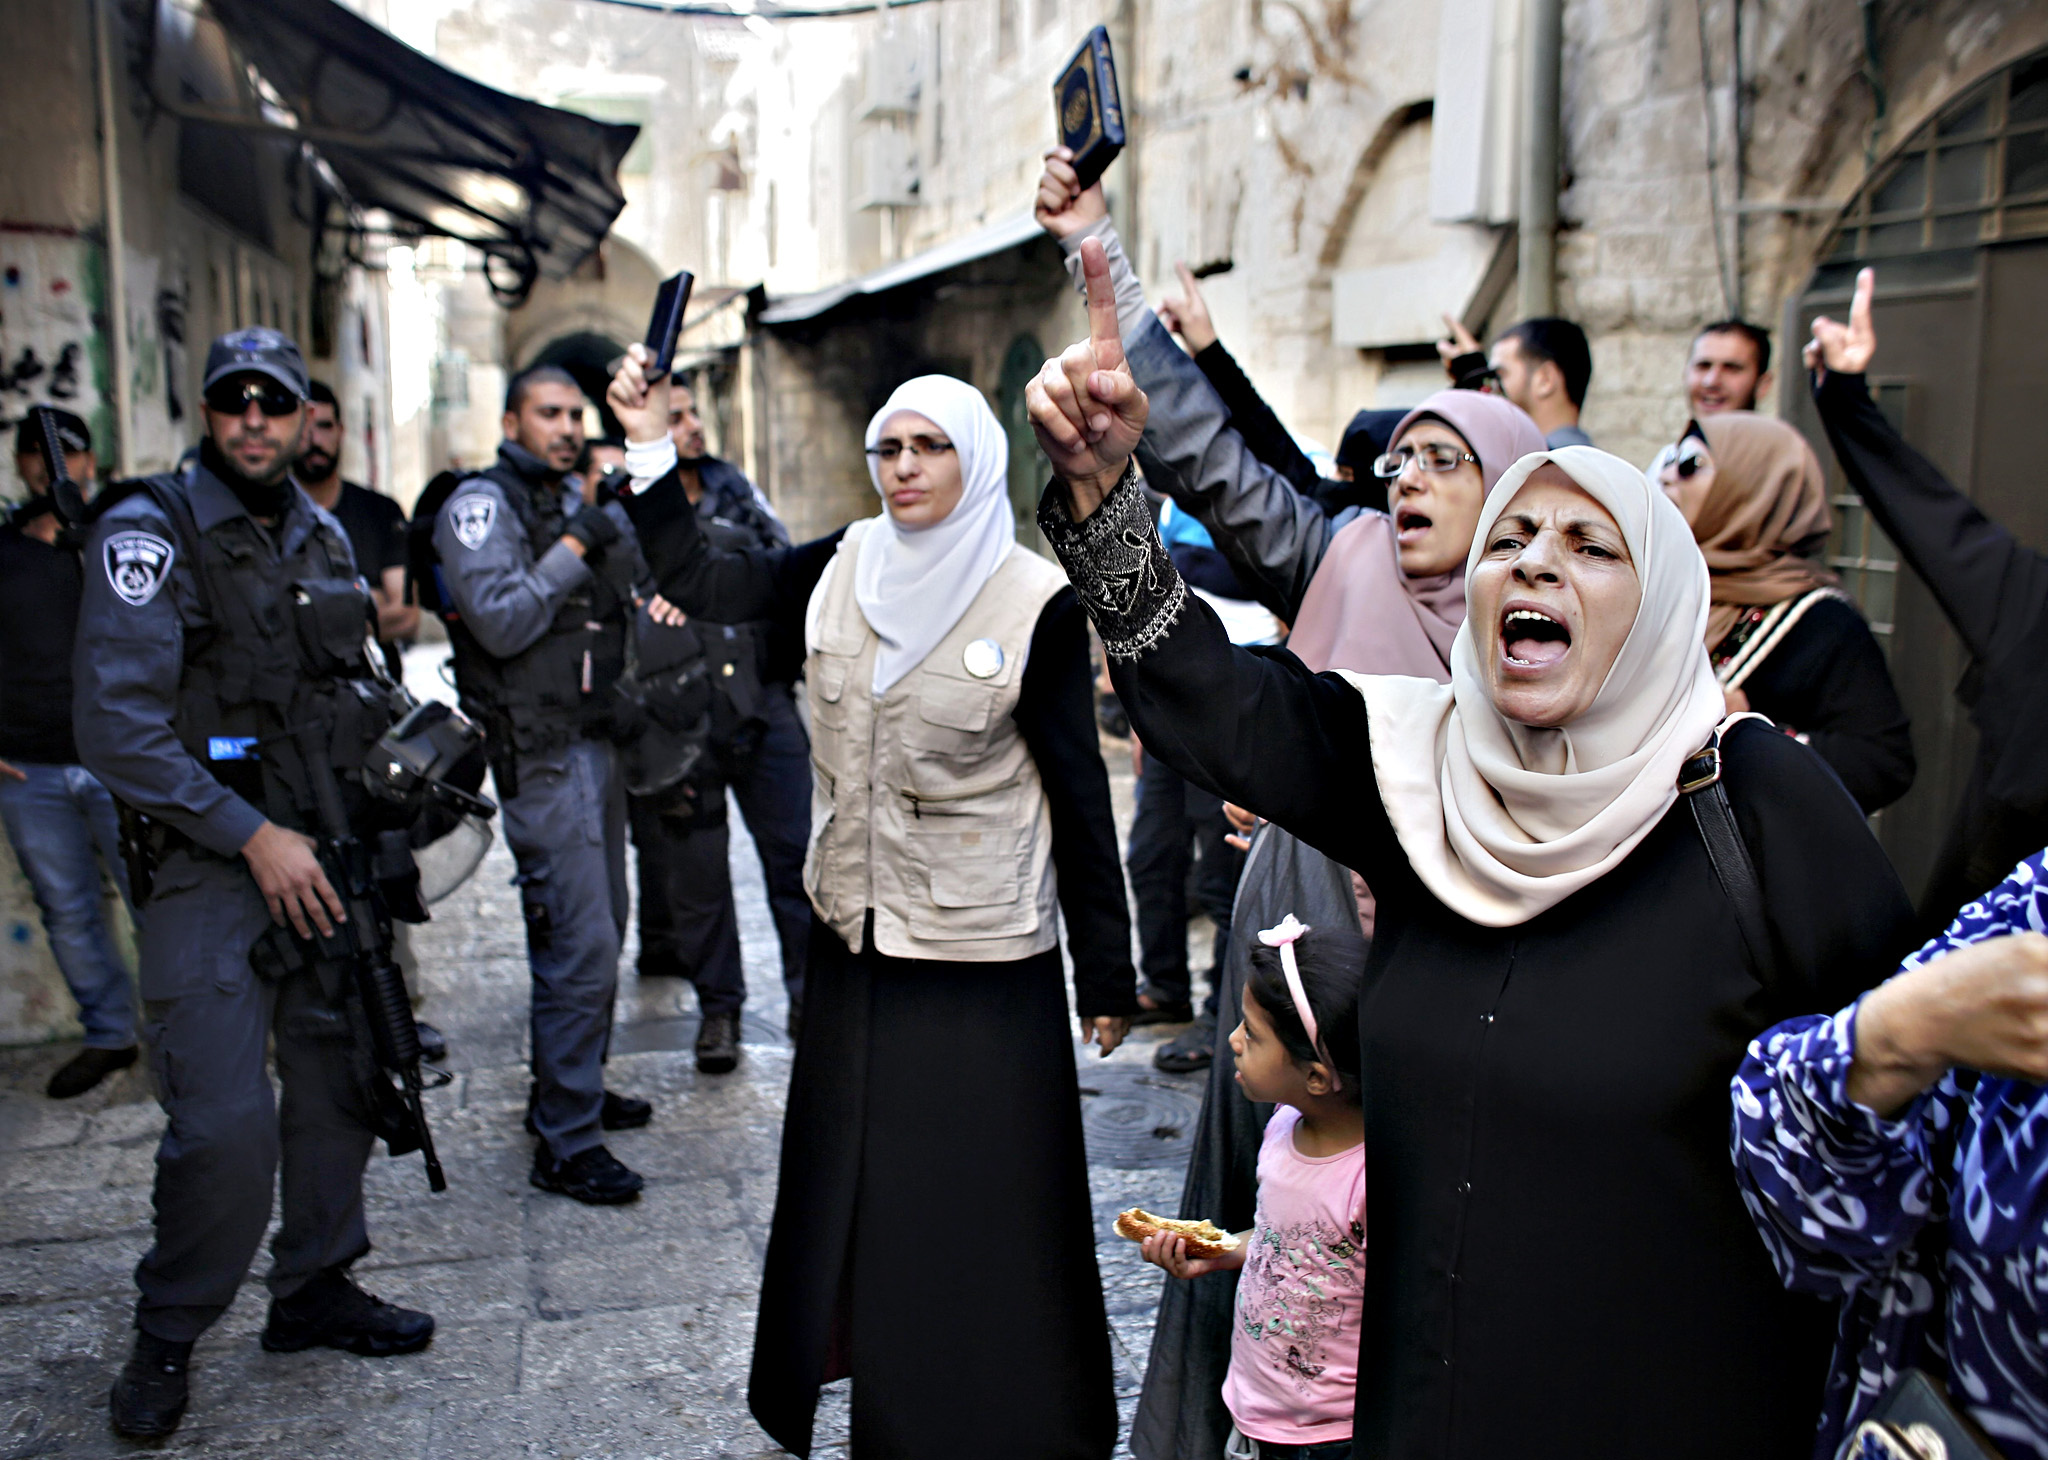 Palestinian women from the so-called Mur...Palestinian women from the so-called Murrabit group raise copies of the Koran, Islam's holy book, and shout slogans in front of Israeli security forces during a protest against Jewish groups visiting the Al-Aqsa mosque compound in Jerusalems old city on September 22, 2015. Israel said thousands of police would be deployed in Jerusalem ahead of the Yom Kippur and Eid al-Adha holidays after three days of clashes rocked the Al-Aqsa mosque compound. AFP PHOTO / AHMAD GHARABLIAHMAD GHARABLI/AFP/Getty Images